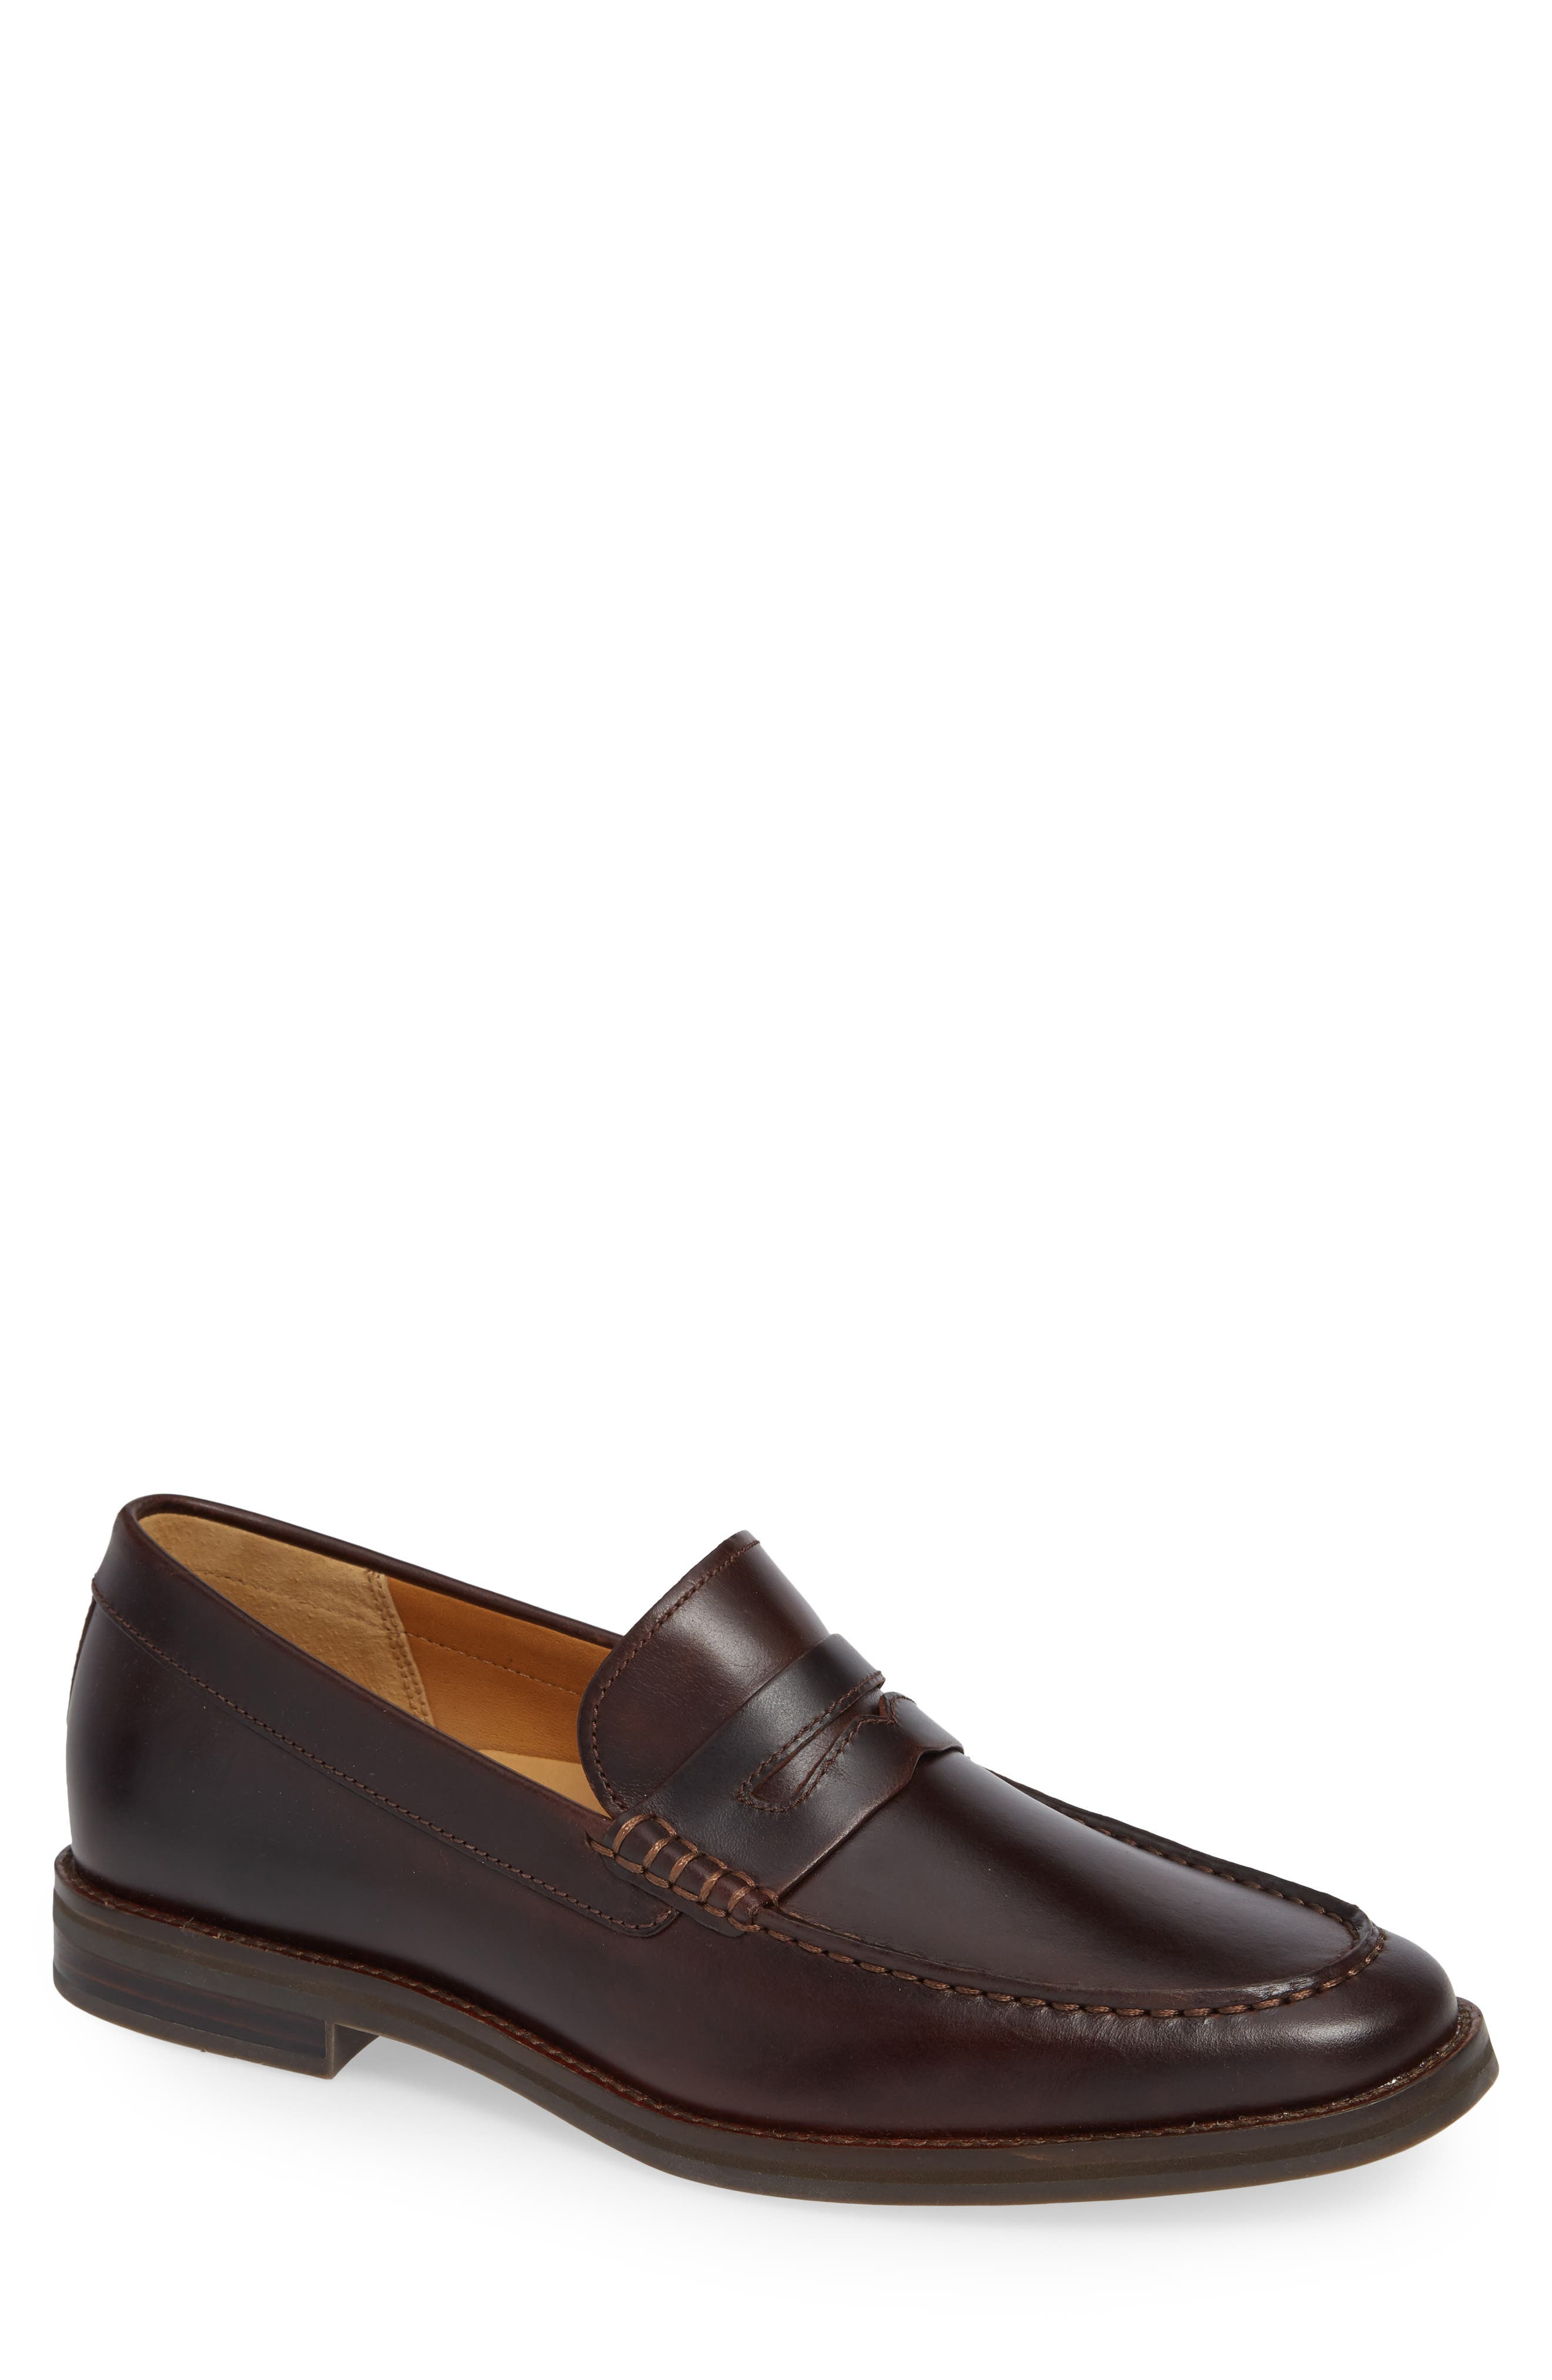 Gold Cup Exeter Penny Loafer,                             Main thumbnail 1, color,                             AMARETTO